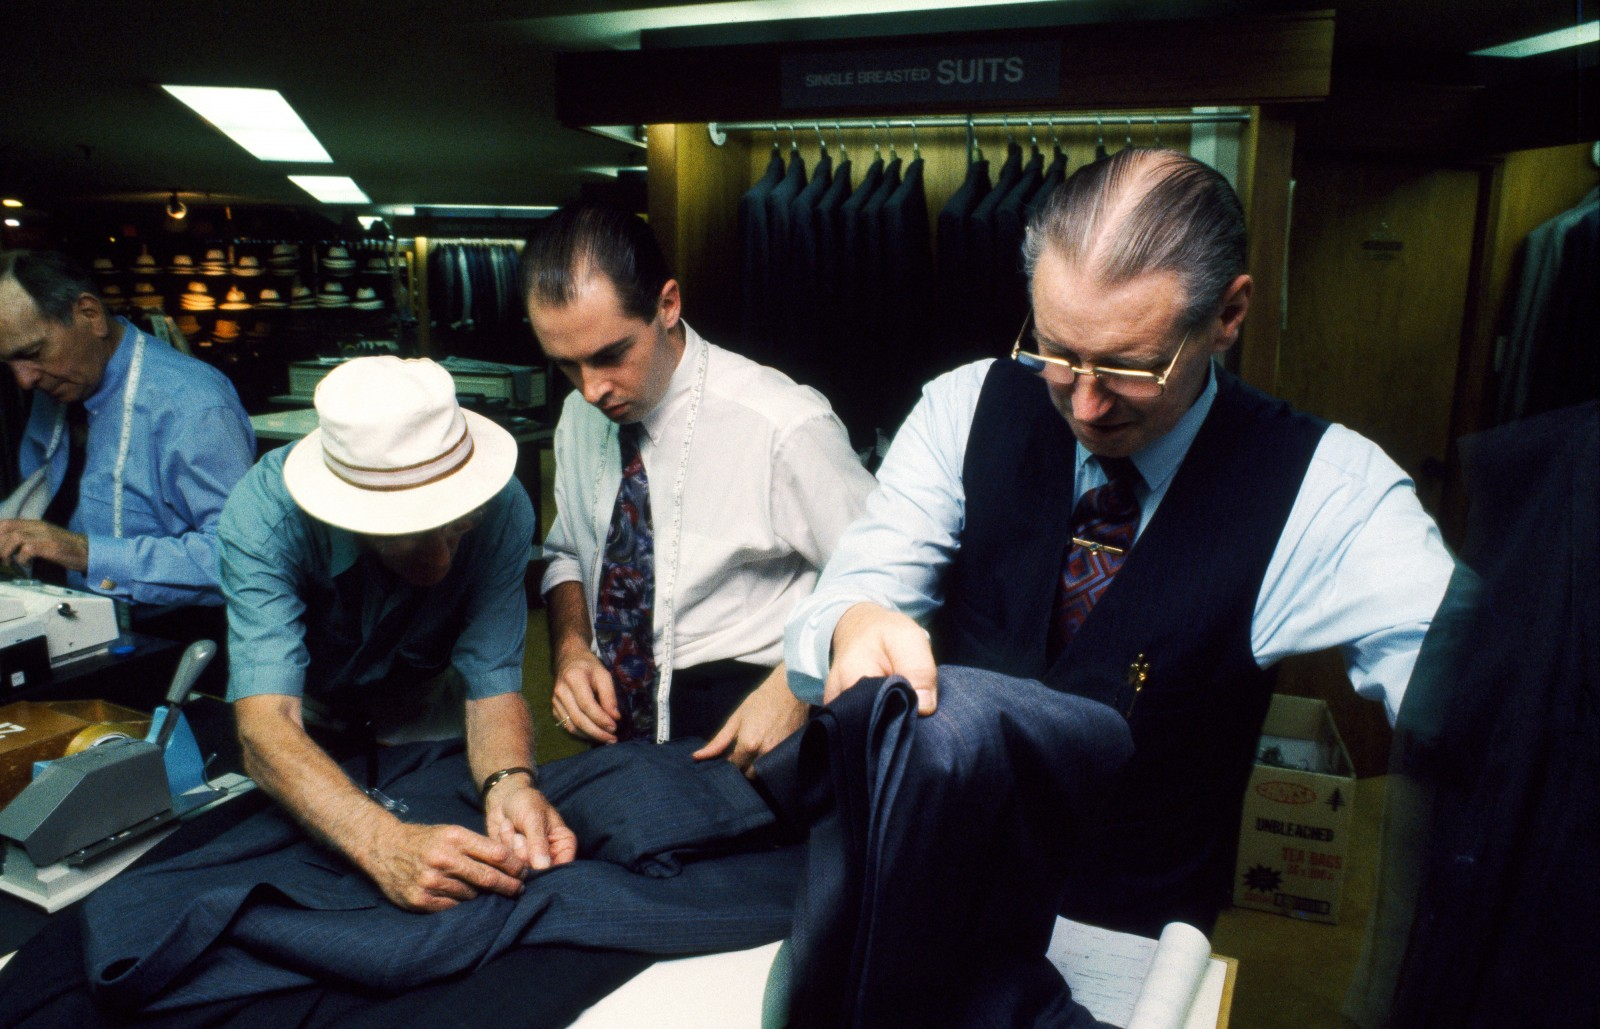 "Smith & Caughey menswear specialists Joe Chapman (far right) and John Hoskins (left) have both been selling to Queen Street patrons for most of their working lives-66 years' service between them. ""When I started, all the shirts were white,"" Hoskins recalls. The store, a Iandmark in the street, carefully maintains its tradition of old world service. Nevertheless, the famous elegance of its window displays has adapted aggressively to the '90s."